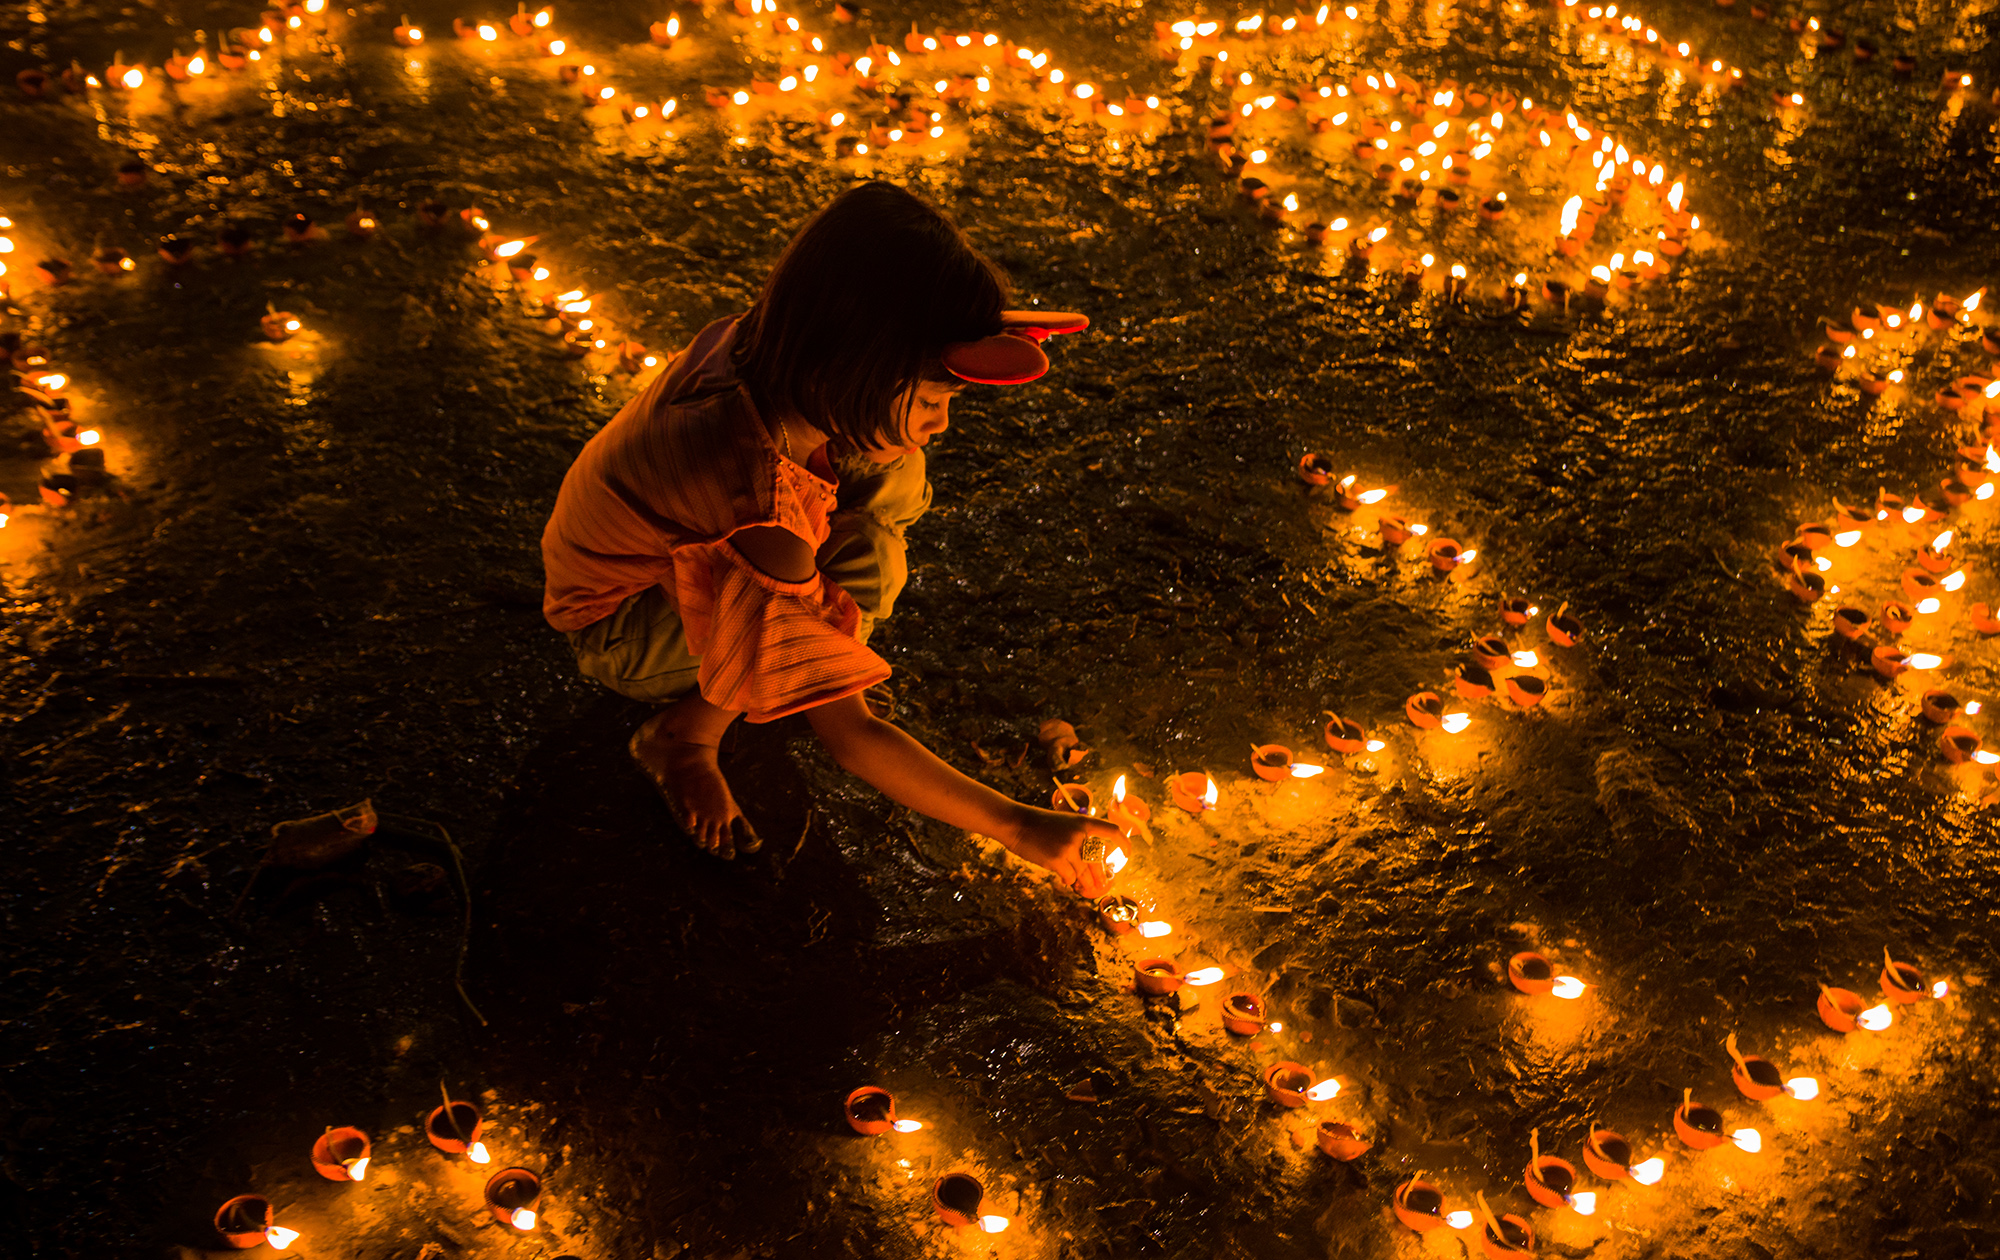 THIS PHOTO BLENDS THE SIDE OF INNOCENCE WITH THE FIRING OF THE DIYA AS A SYMBOL OF ETERNAL ENLIGHTMENT.